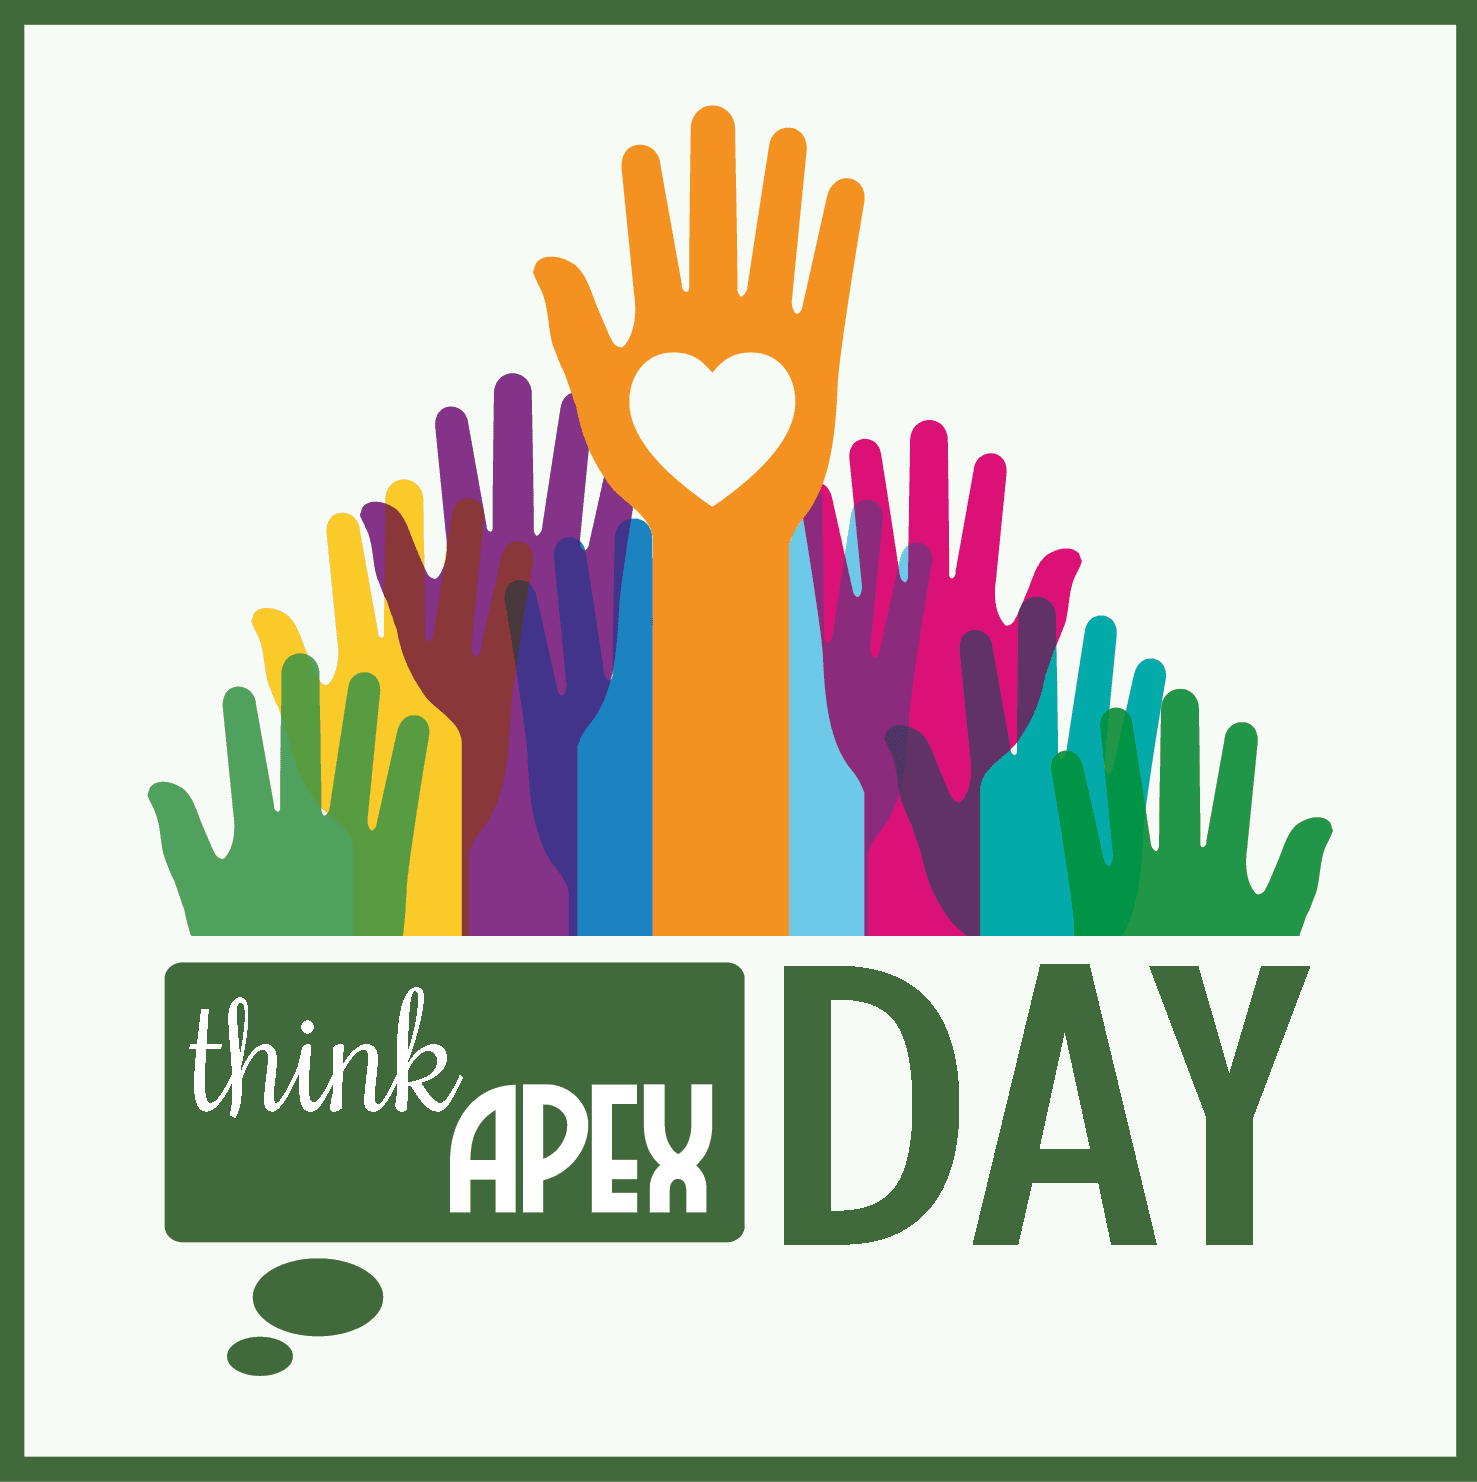 Think Apex Day